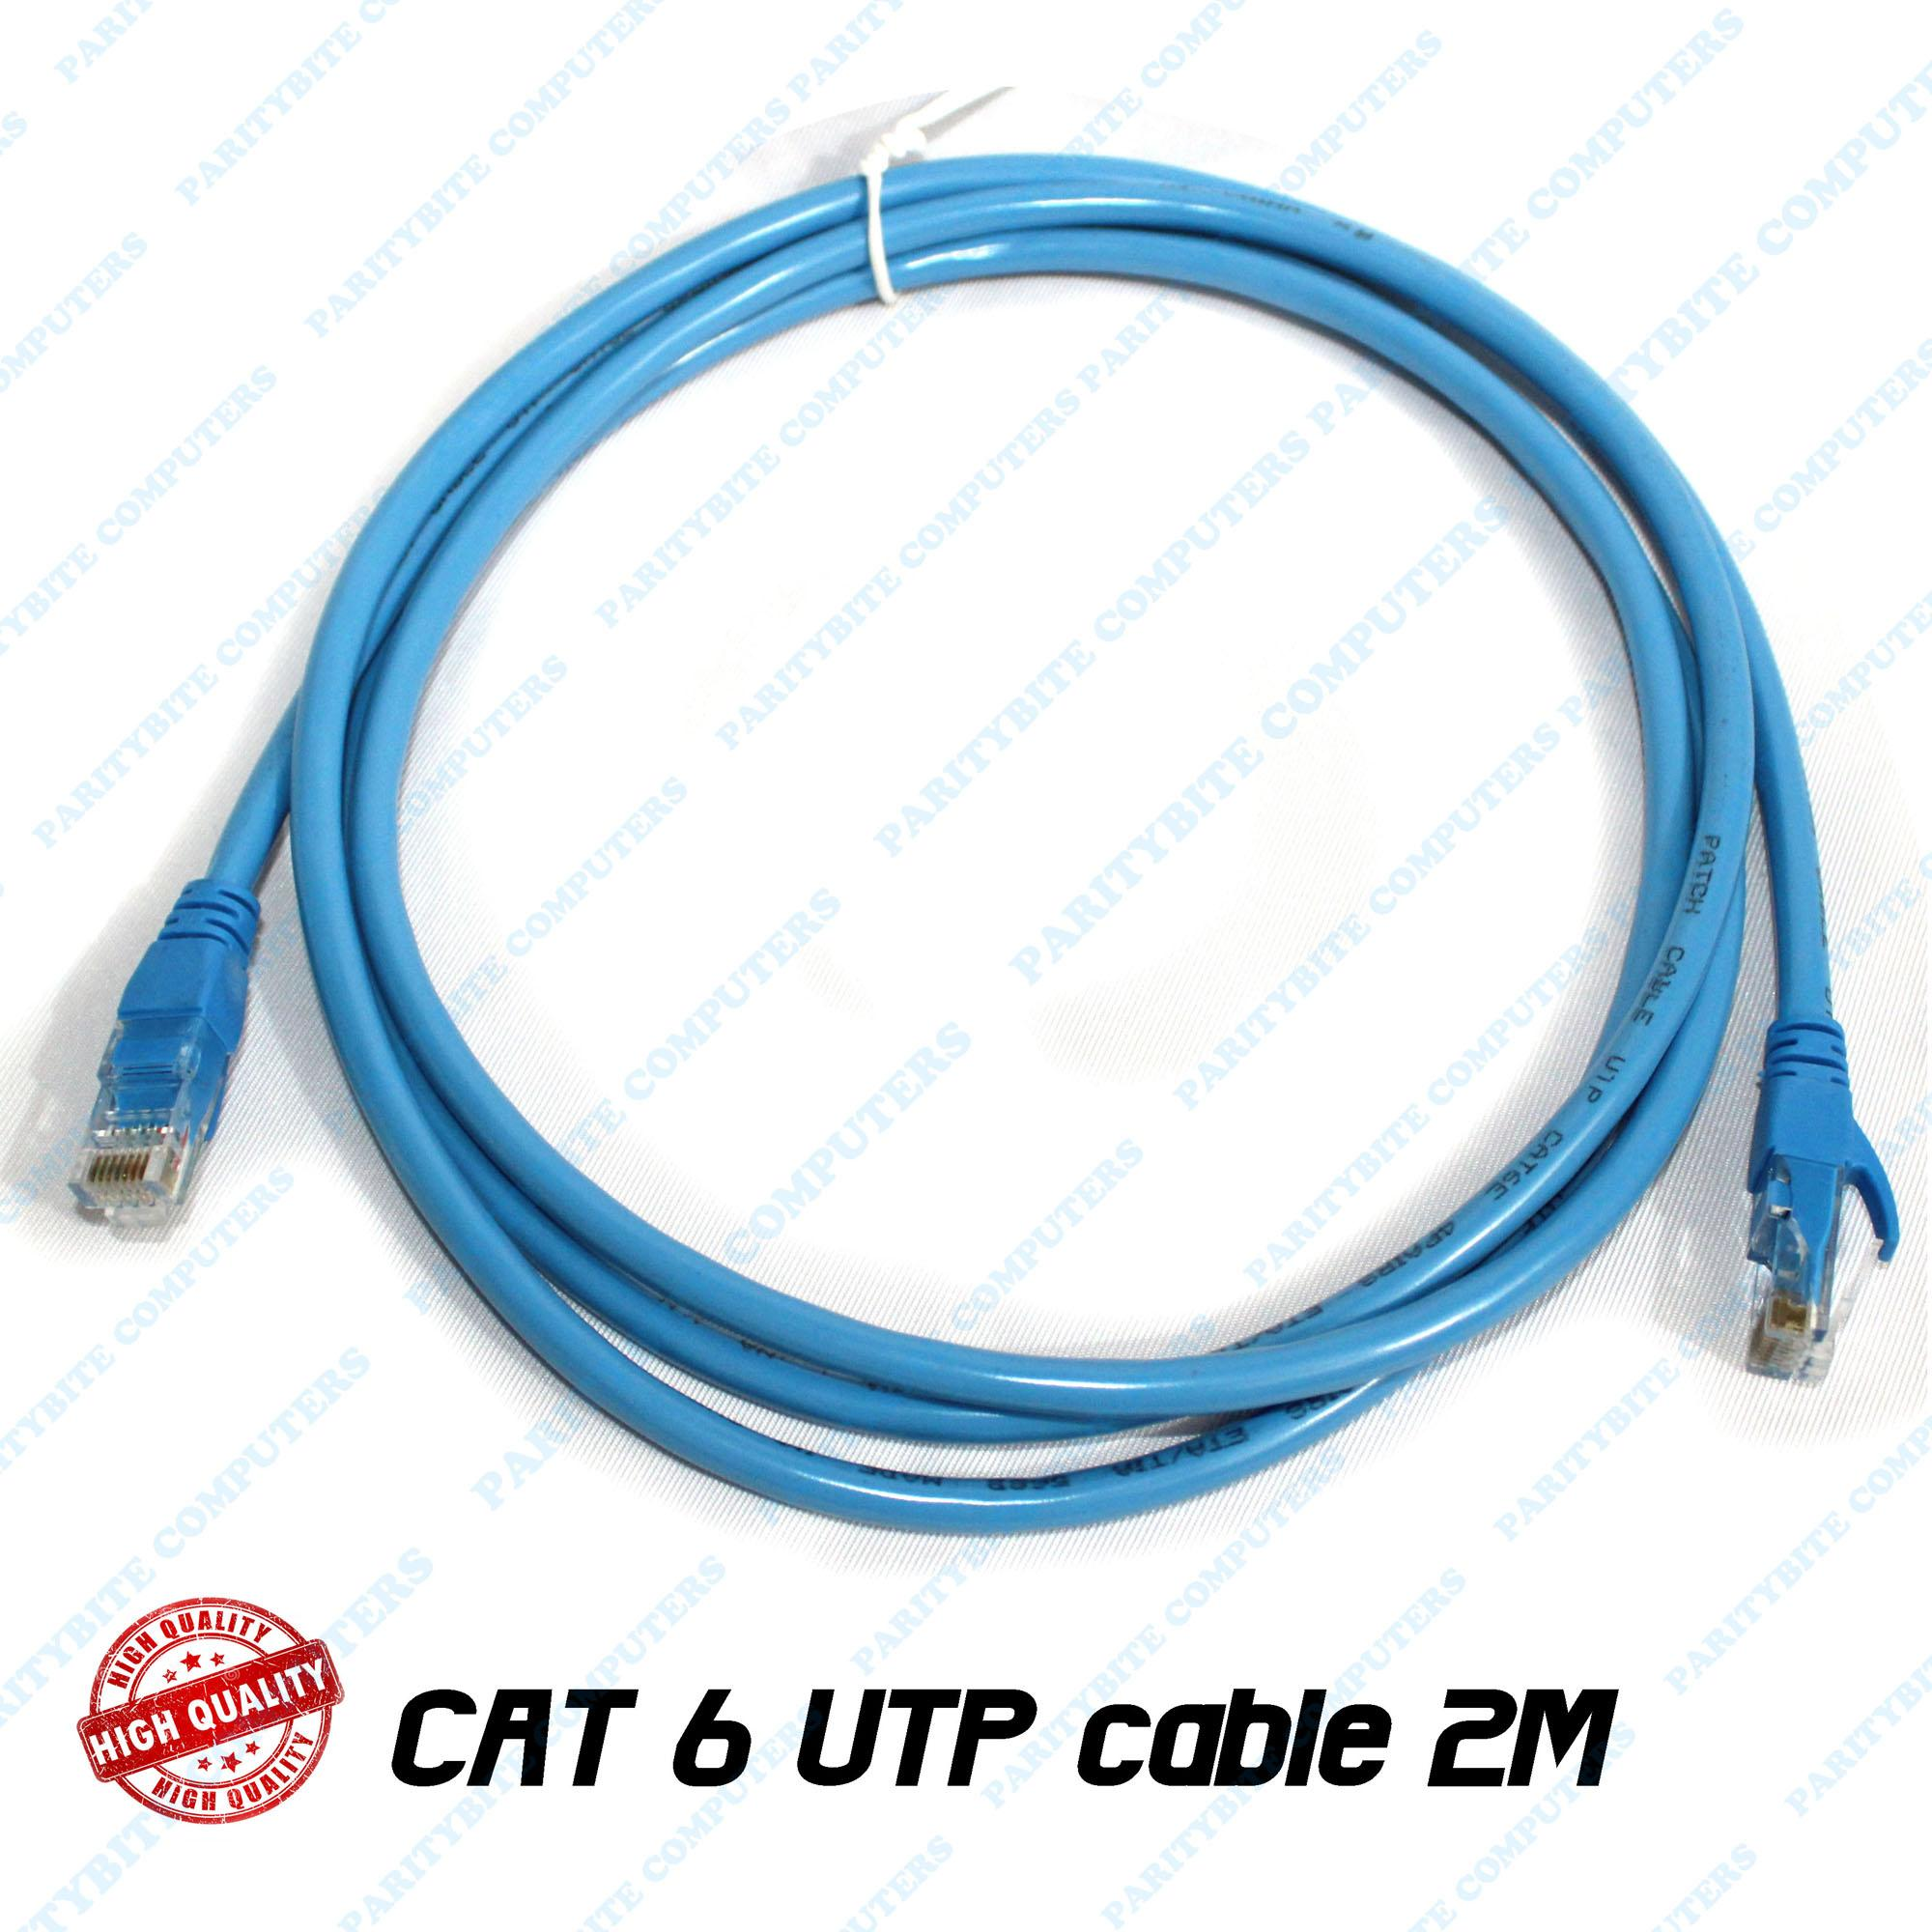 Ethernet Cable For Sale Etherner Adapters Prices Brands Specs Wiring Cat 6 Utp Patch Cord With Rj45 Cat6 2m